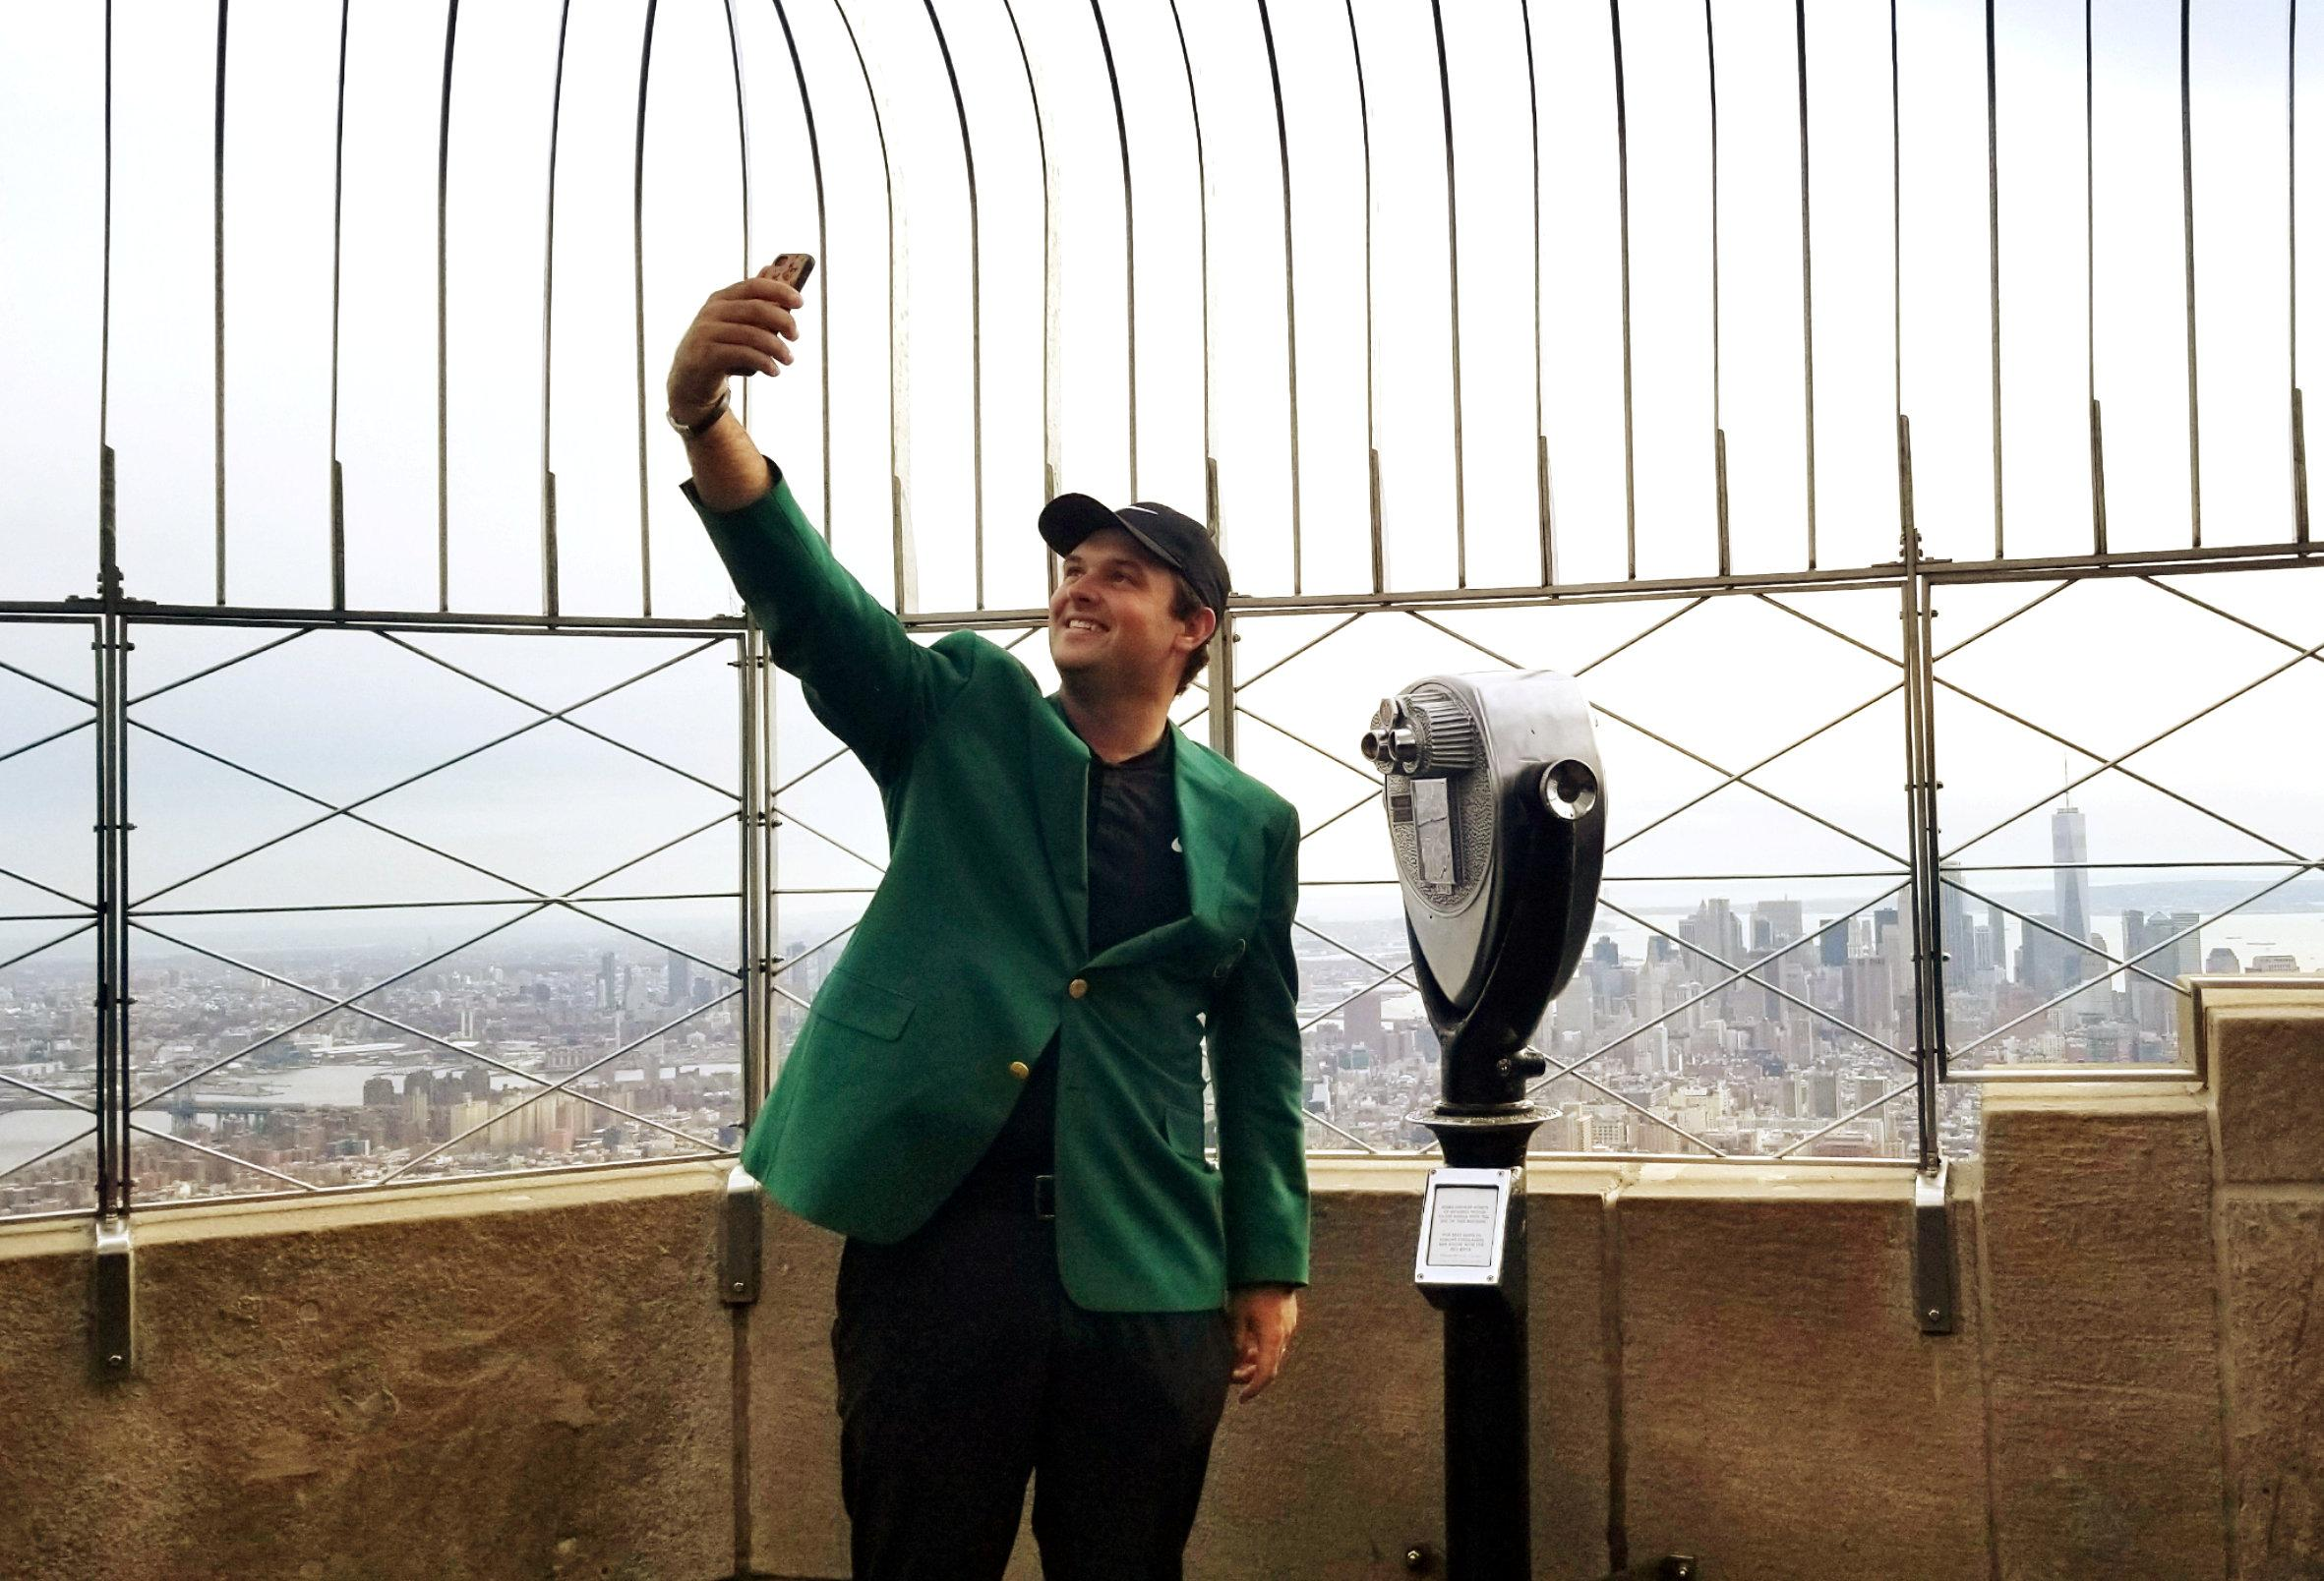 Earlier in the day, Patrick Reed visiting the Empire State Building